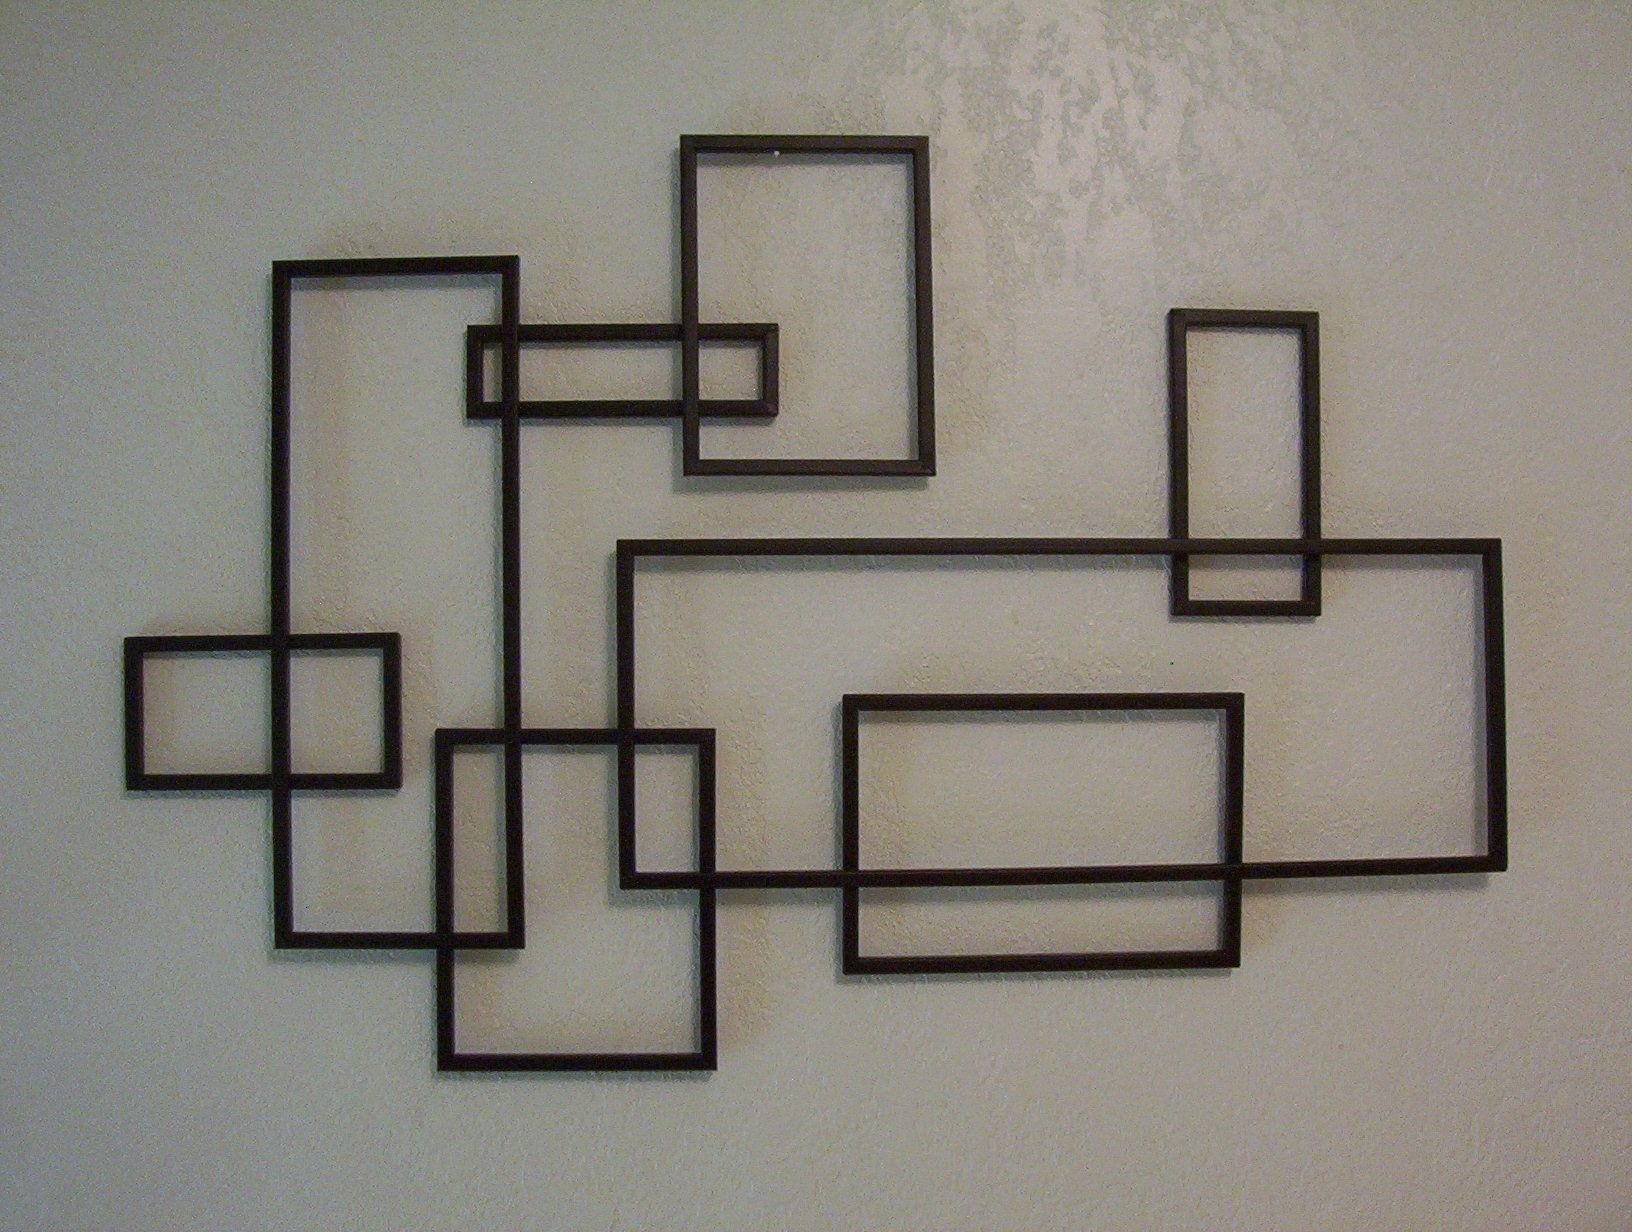 Mid Century Modern ~ De Stijl Style Geometric Metal Wall Sculpture Throughout 2018 Abstract Geometric Metal Wall Art (View 11 of 20)